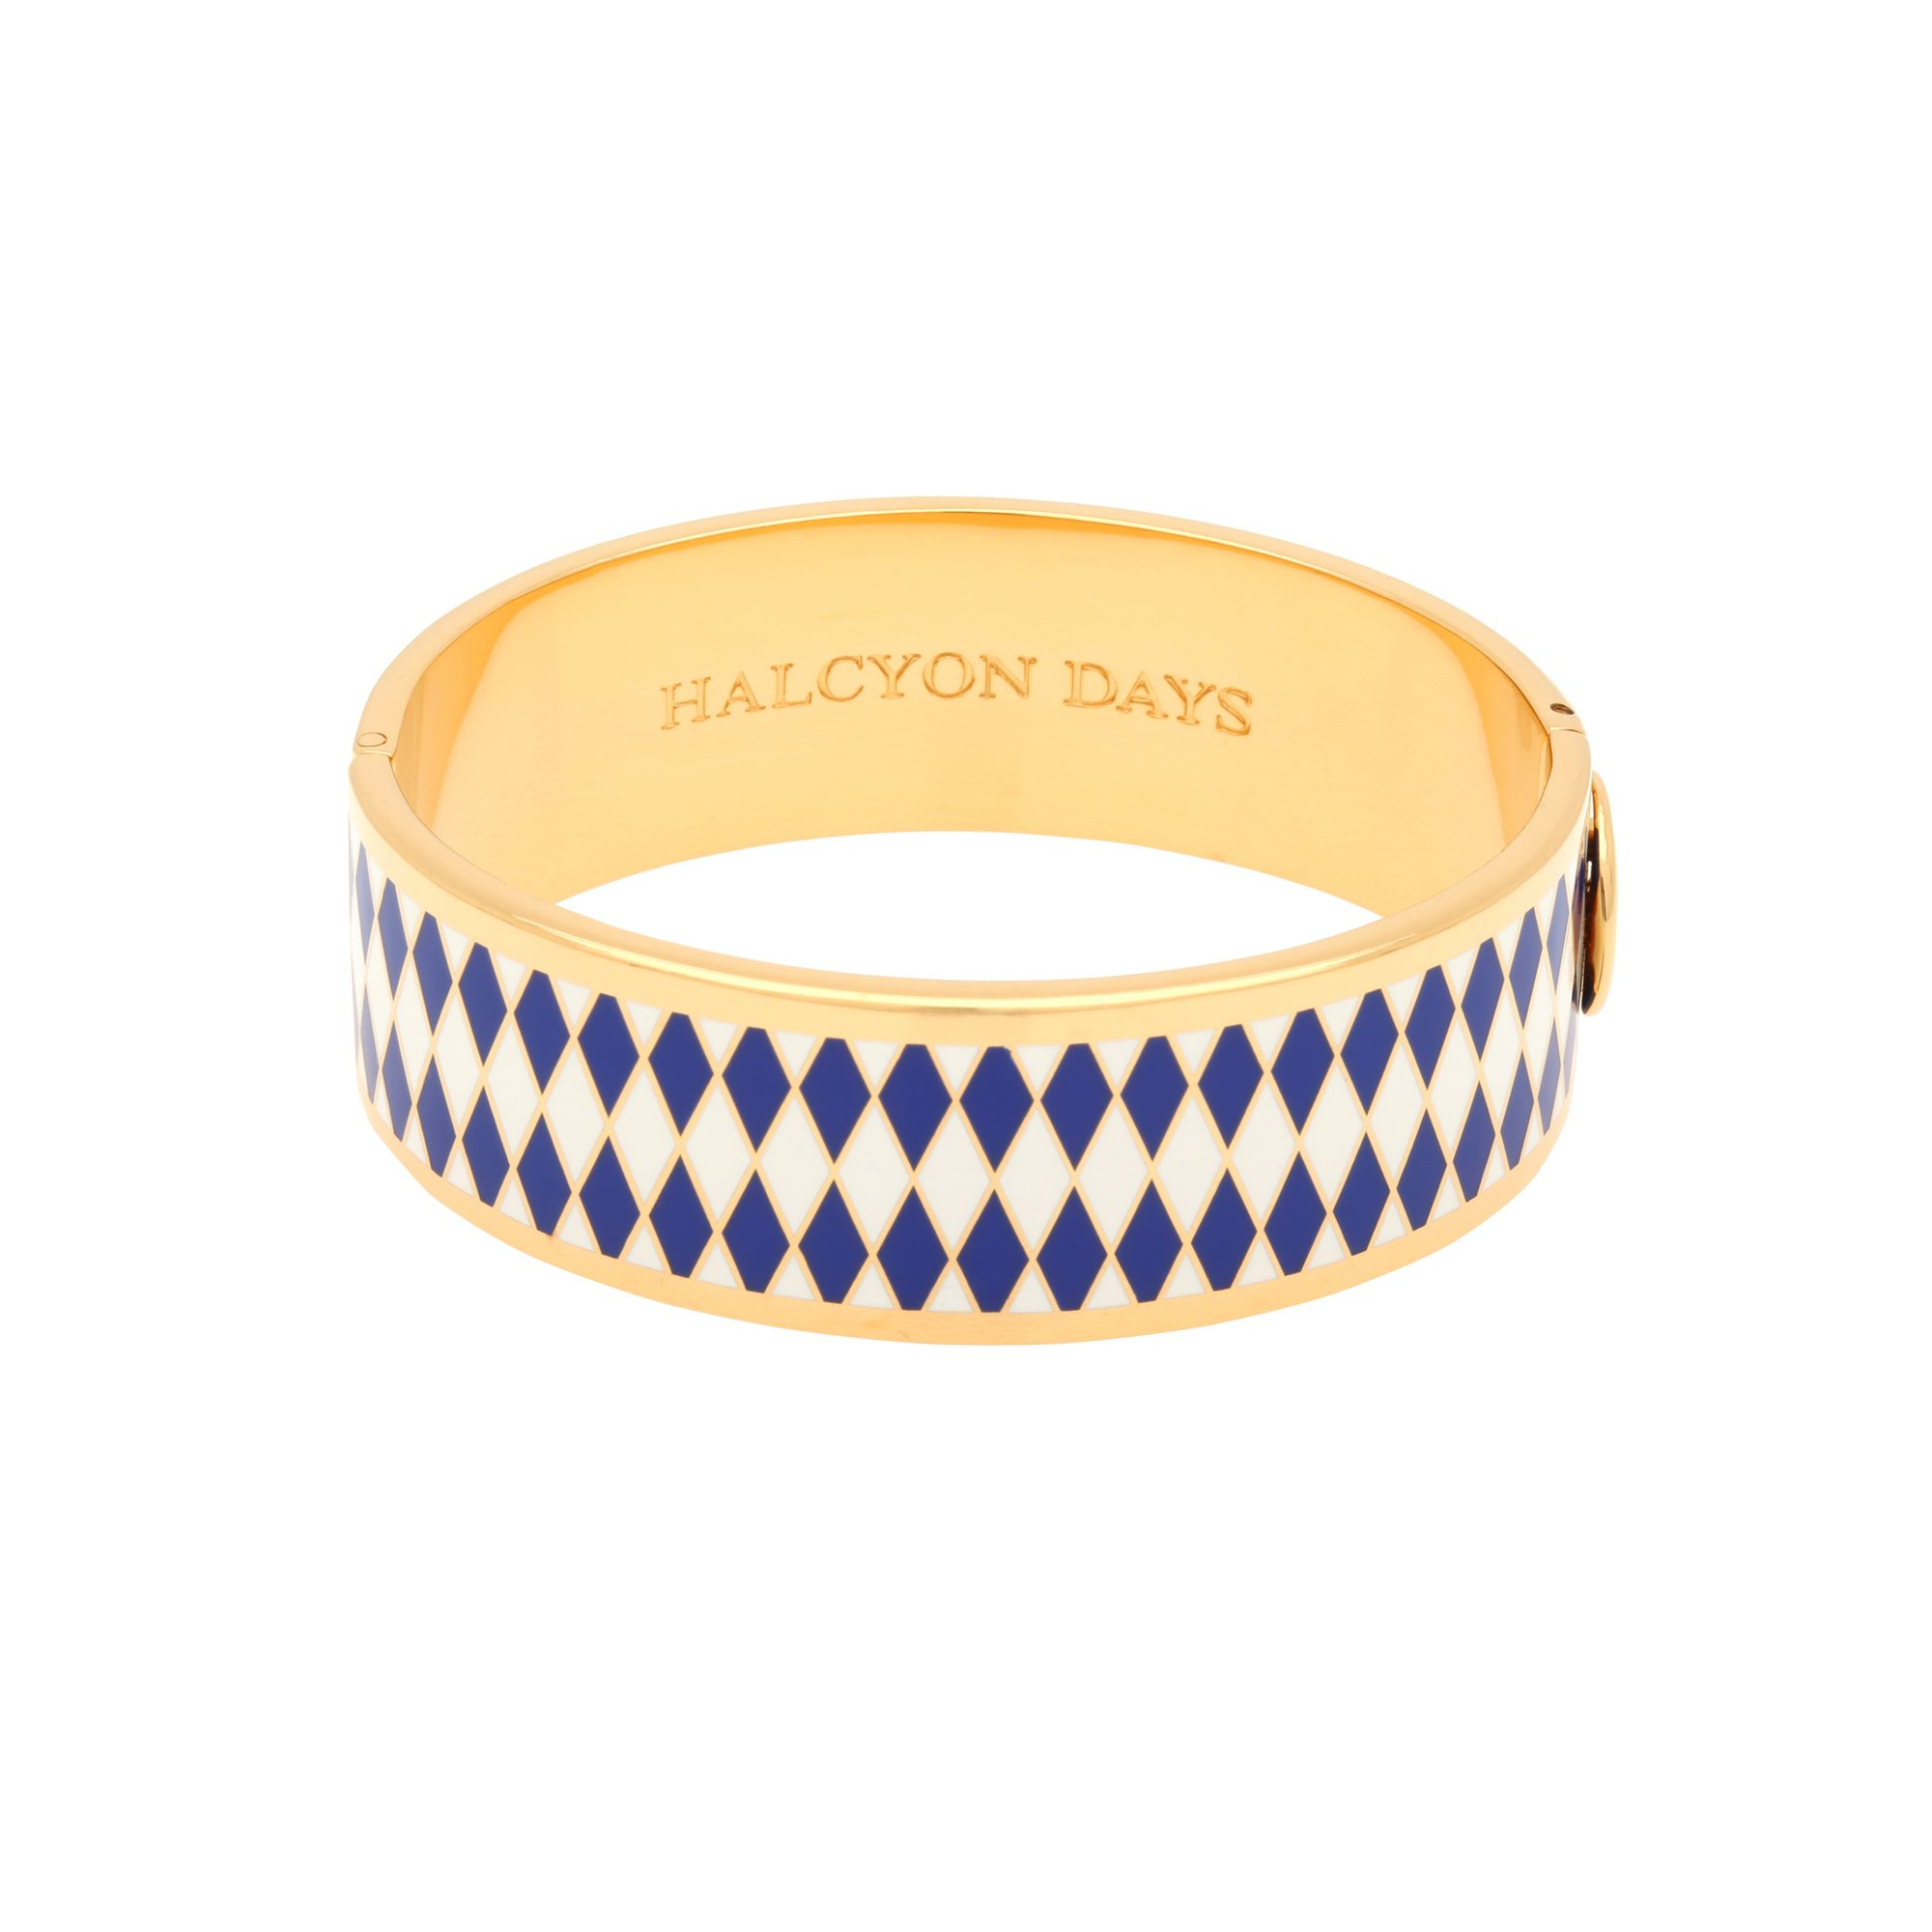 Halcyon Days Parterre Cobalt Cream and Gold Bangle